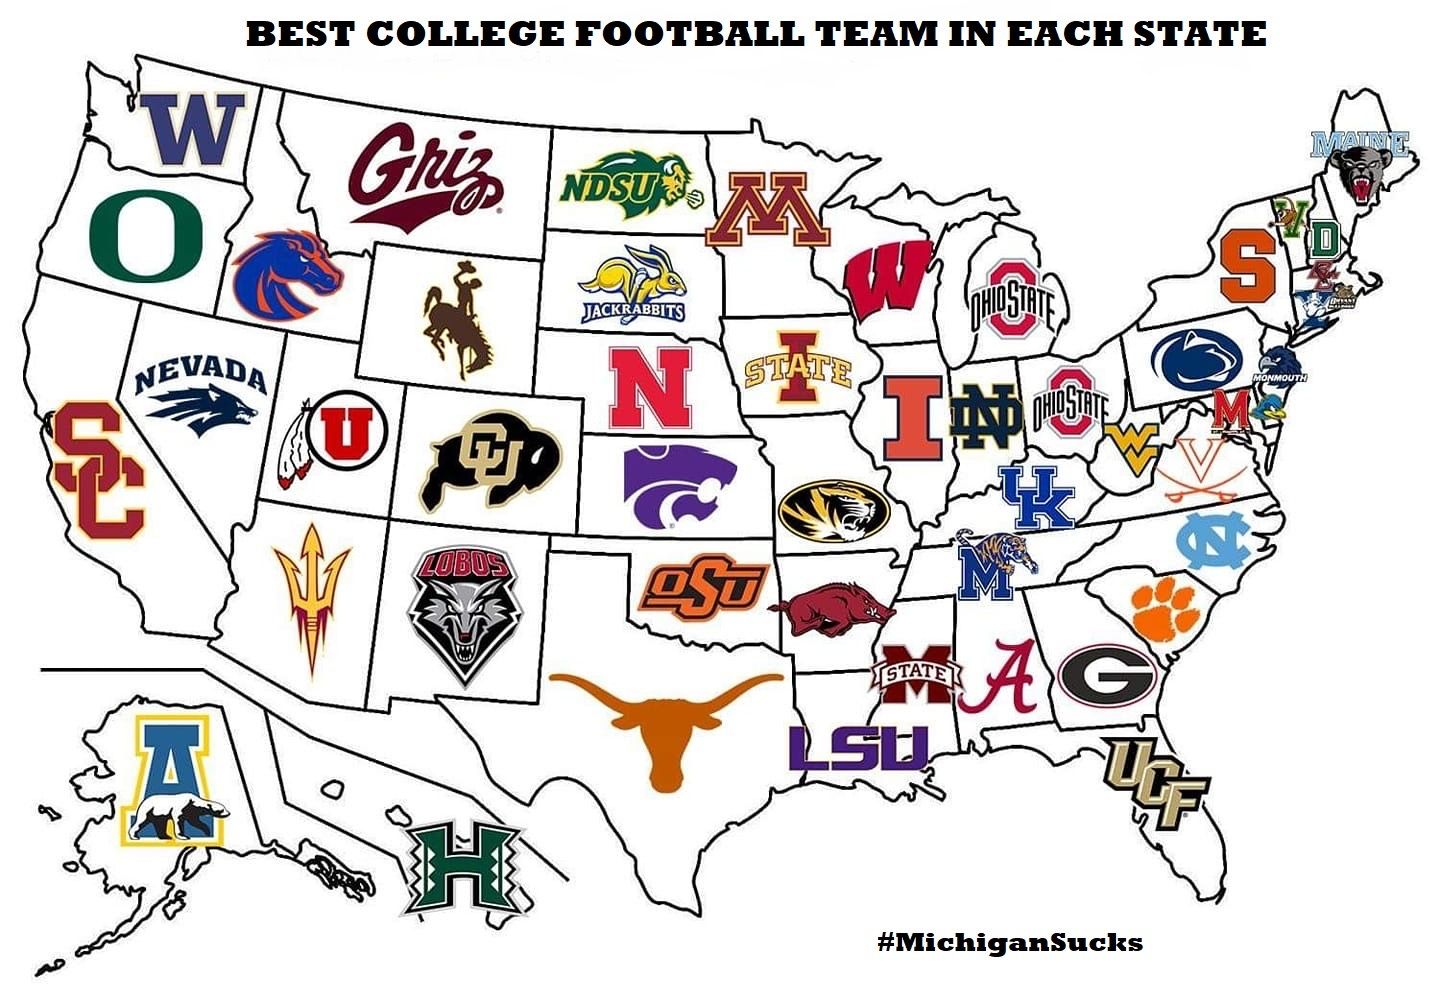 Pin By Mallory Jo On Hang On Sloopy In 2020 Buckeye Nation College Football Teams Ohio State Buckeyes Football